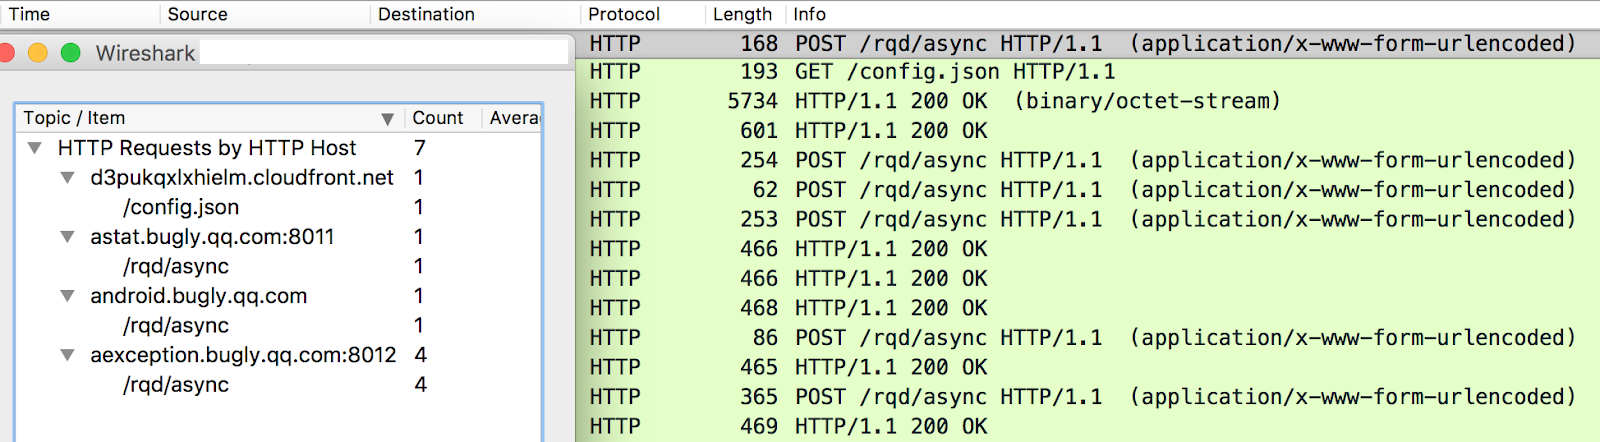 8-http-requests